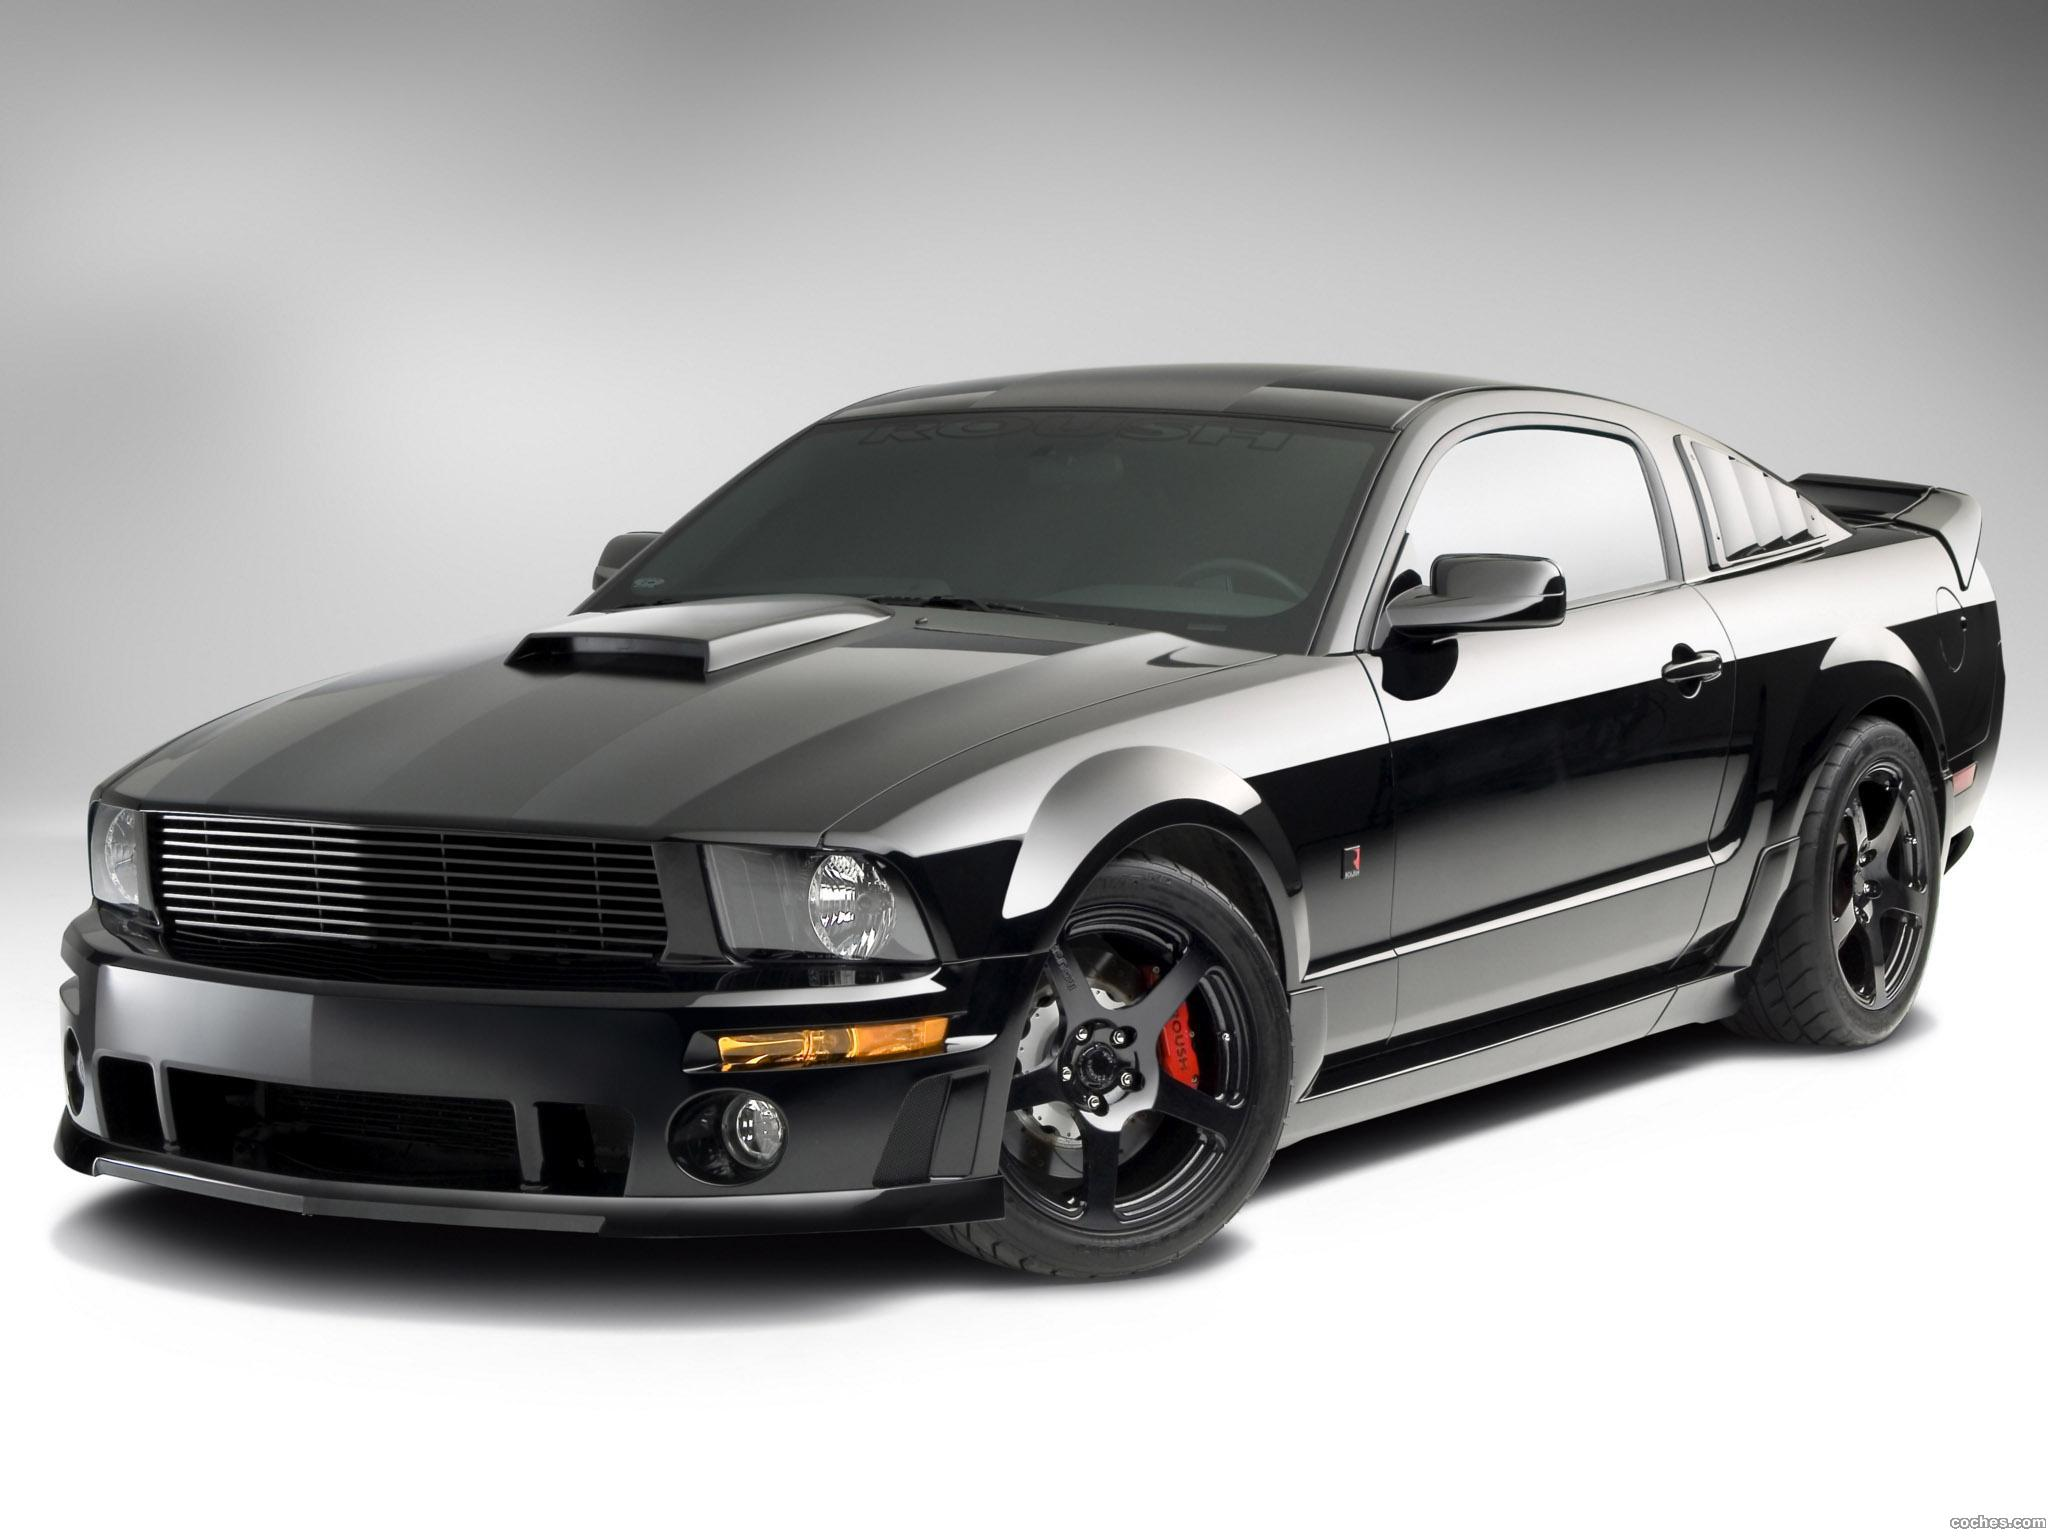 Foto 1 de Roush Ford Mustang Stage 3 Blackjack 2008